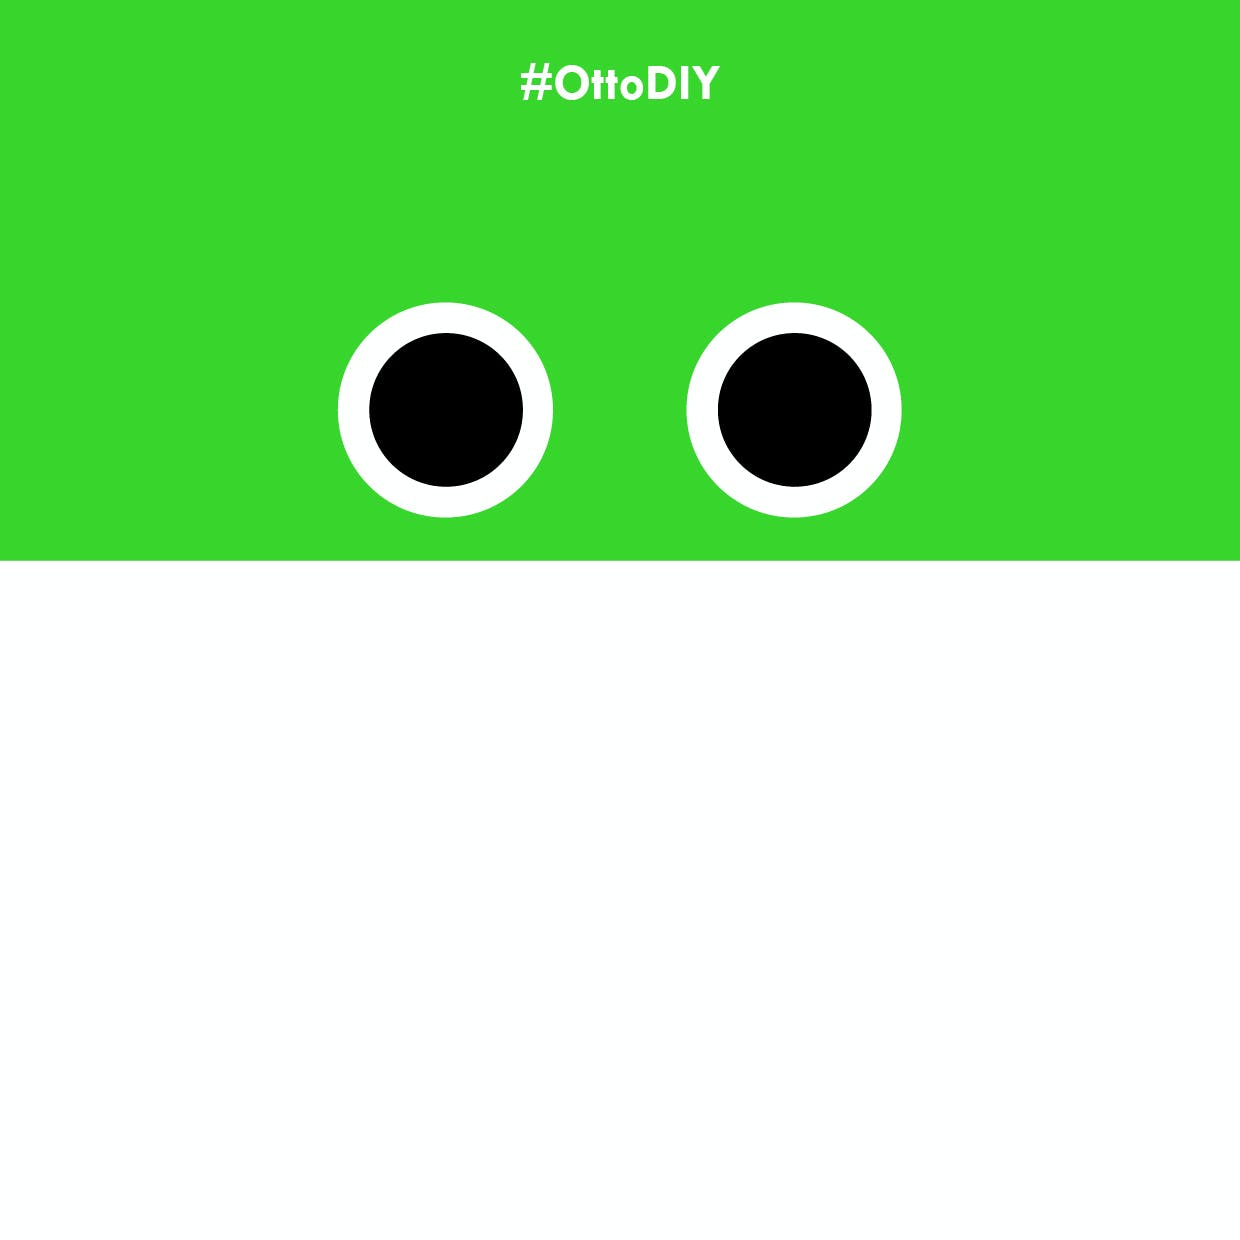 use #OttoDIY to share your Otto in all social media